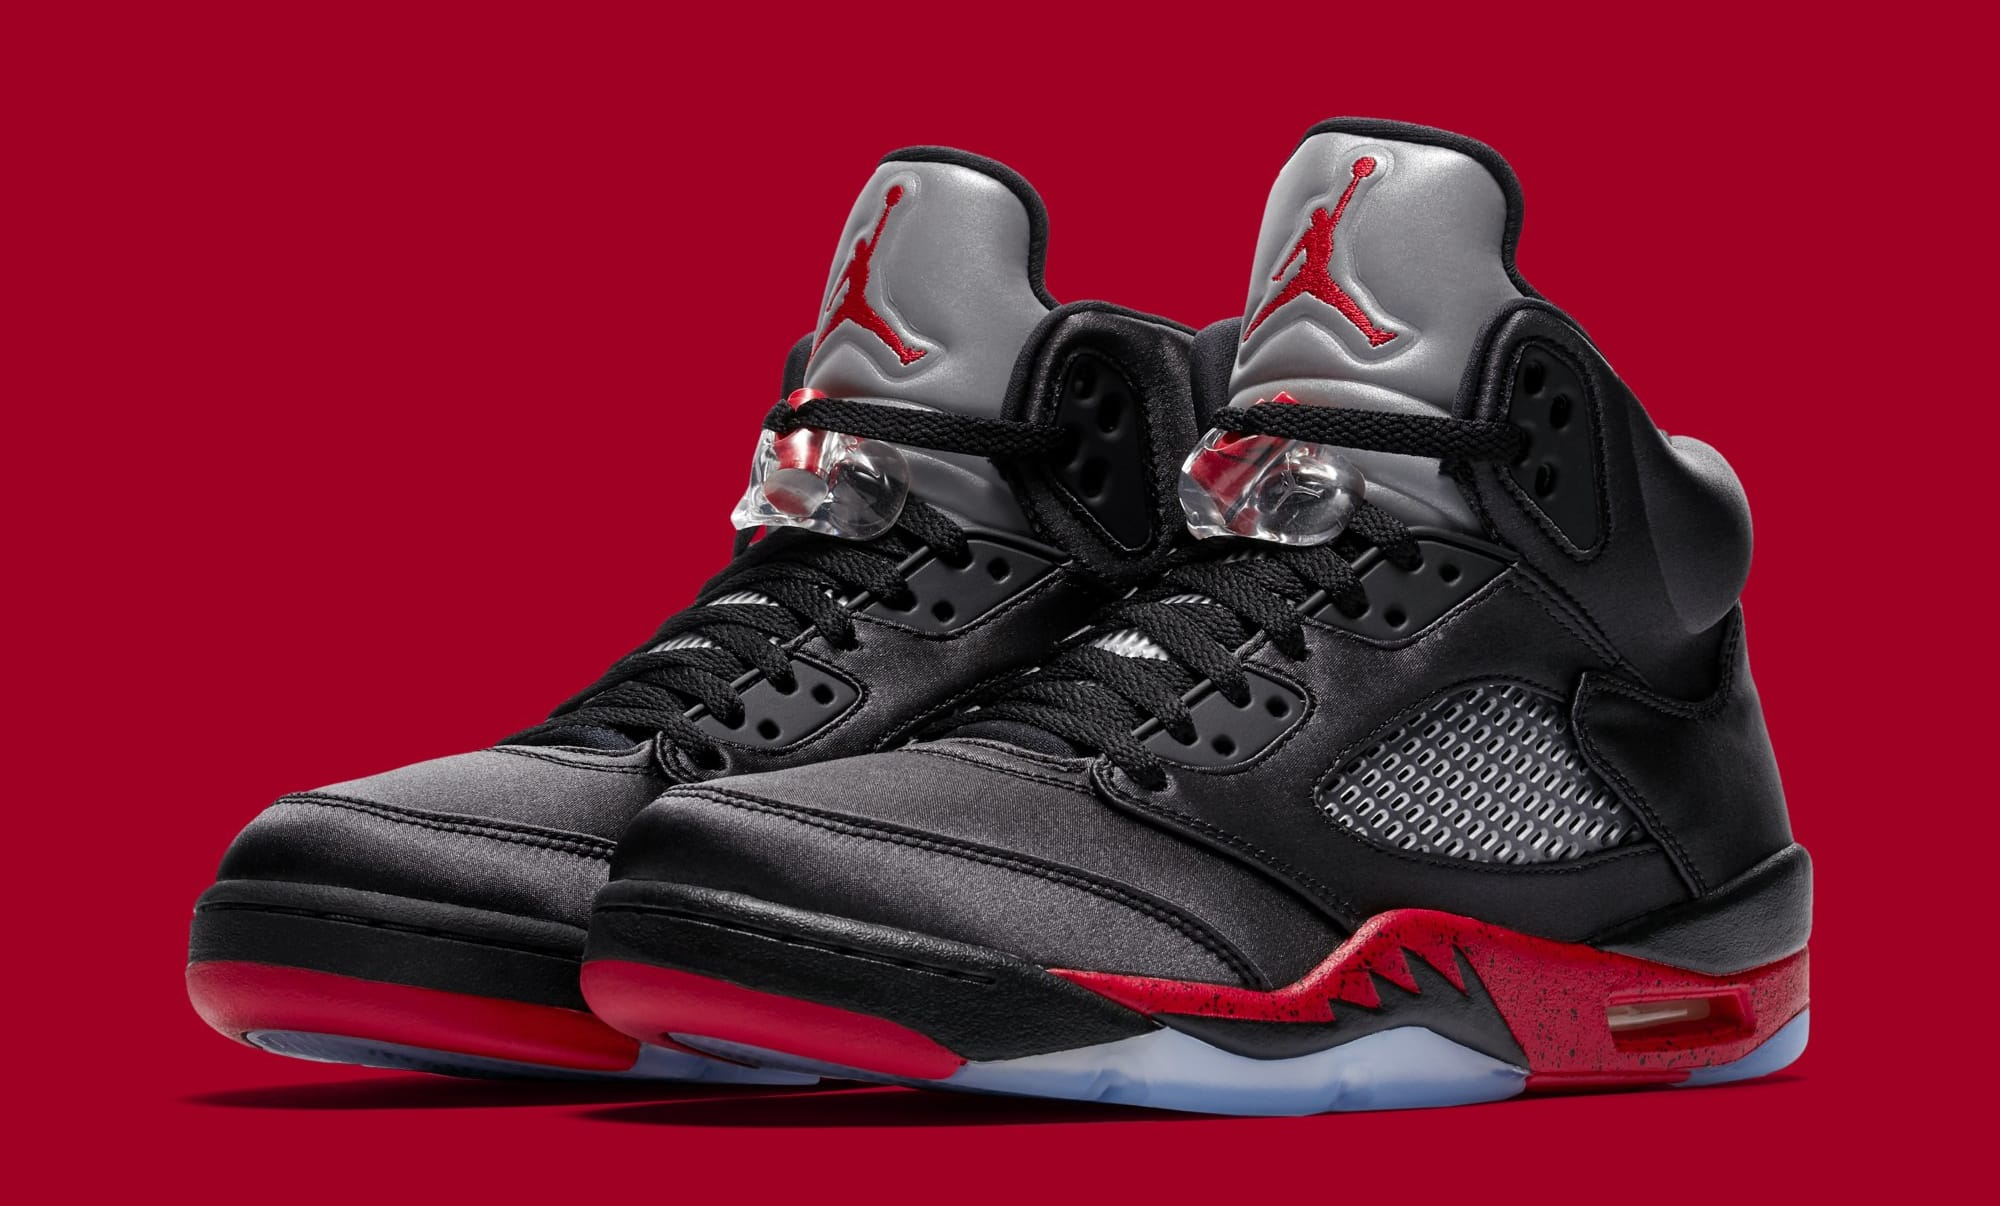 559638df893f air jordan 5 Archives - Air 23 - Air Jordan Release Dates ...